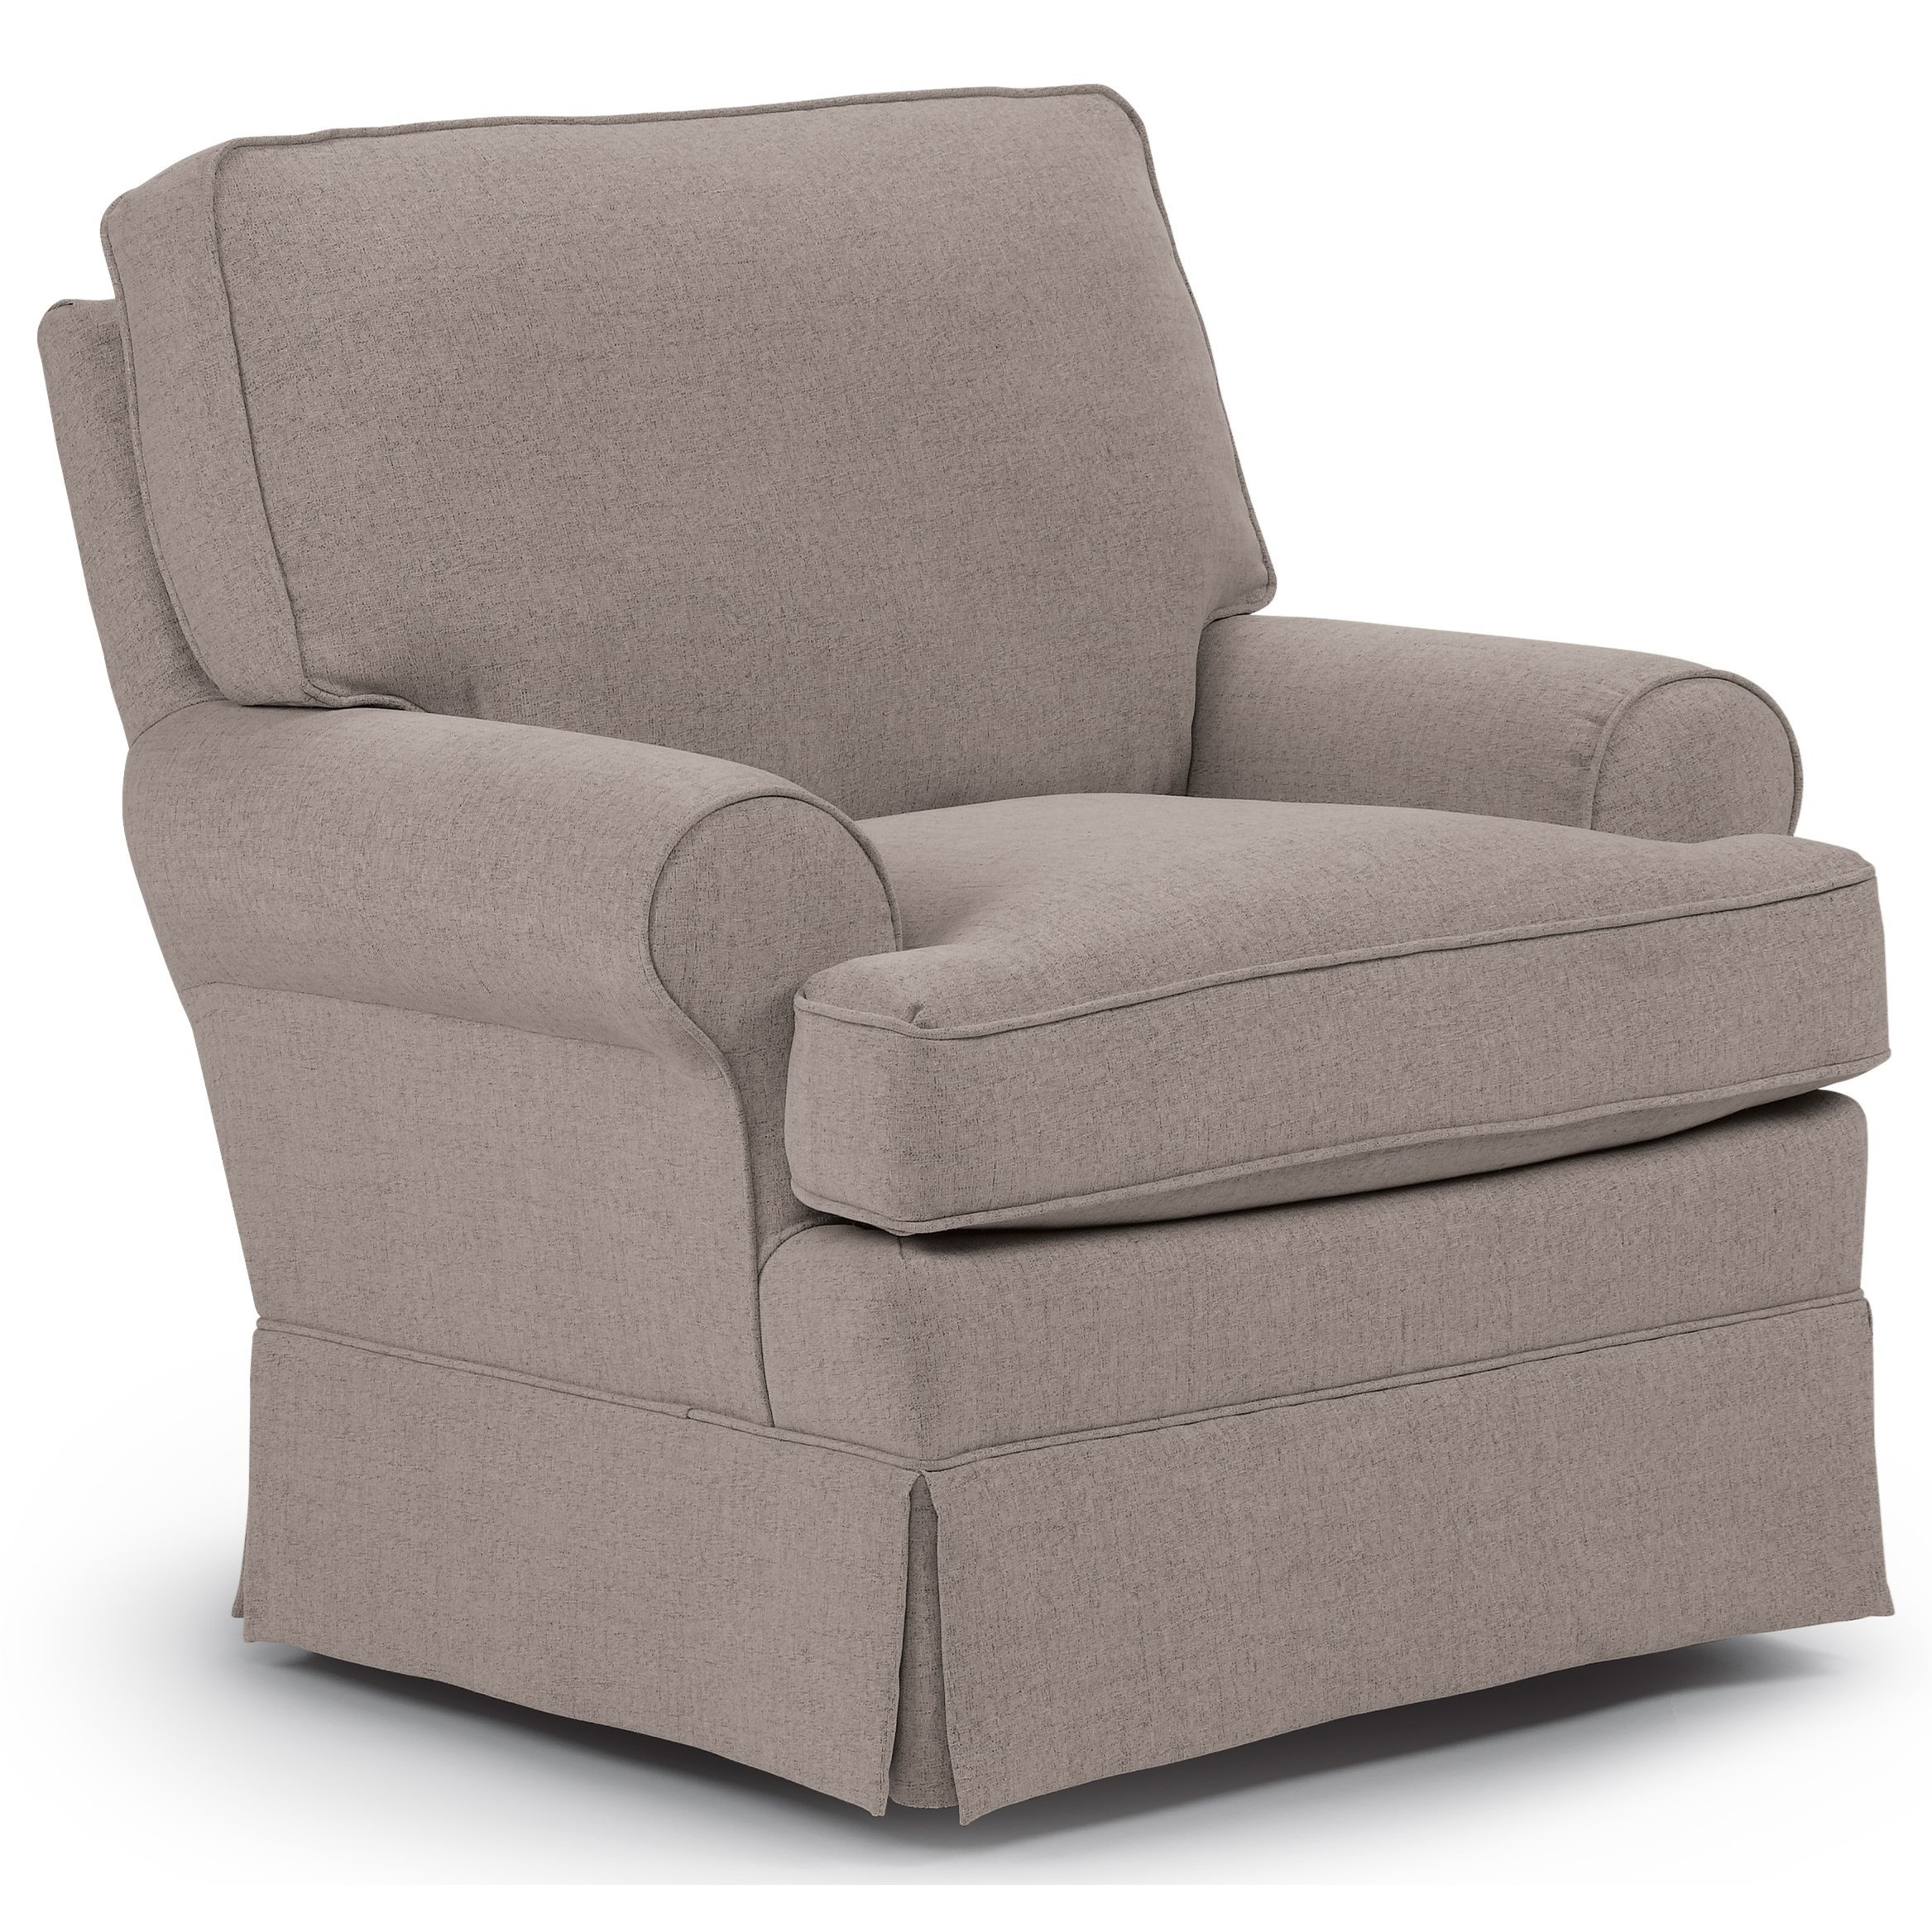 best glider chair swivel chairs for living room home furnishings glide 1577 quinn